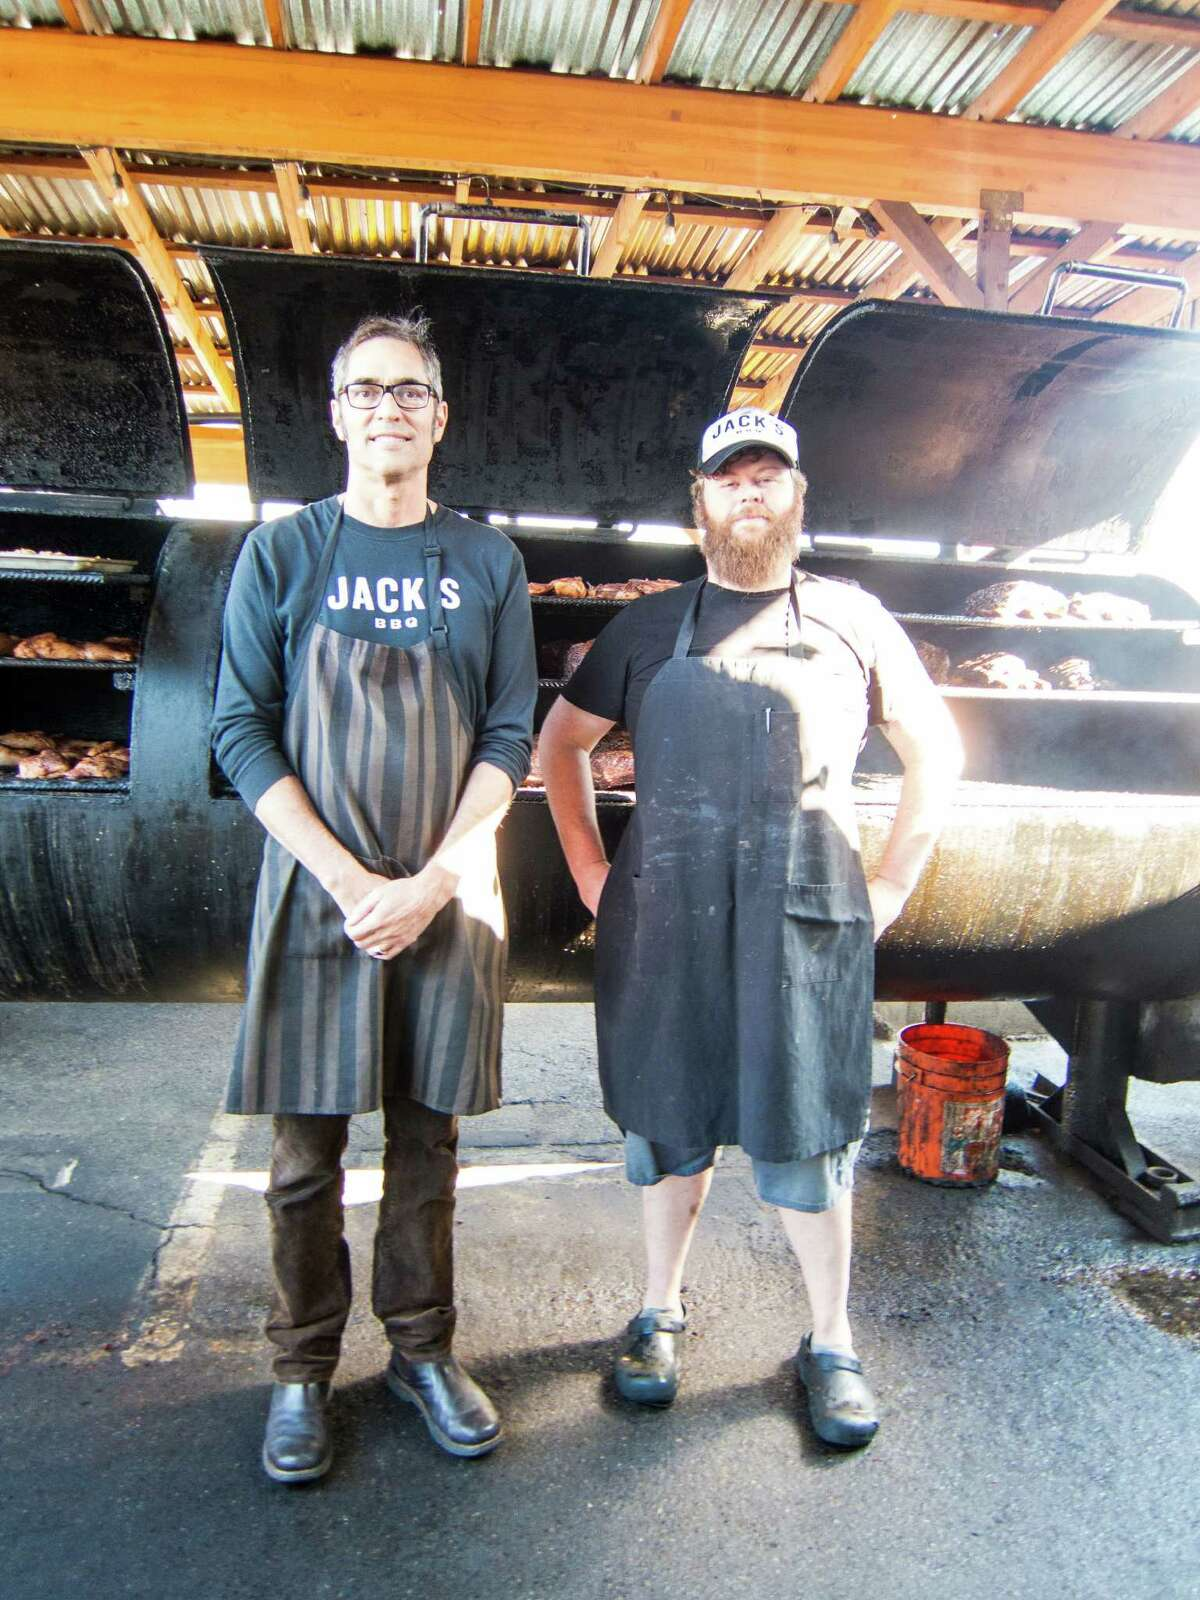 Jack Timmons, left, and Tony White at Jack's BBQ in Seattle. Jack's BBQ - Seattle